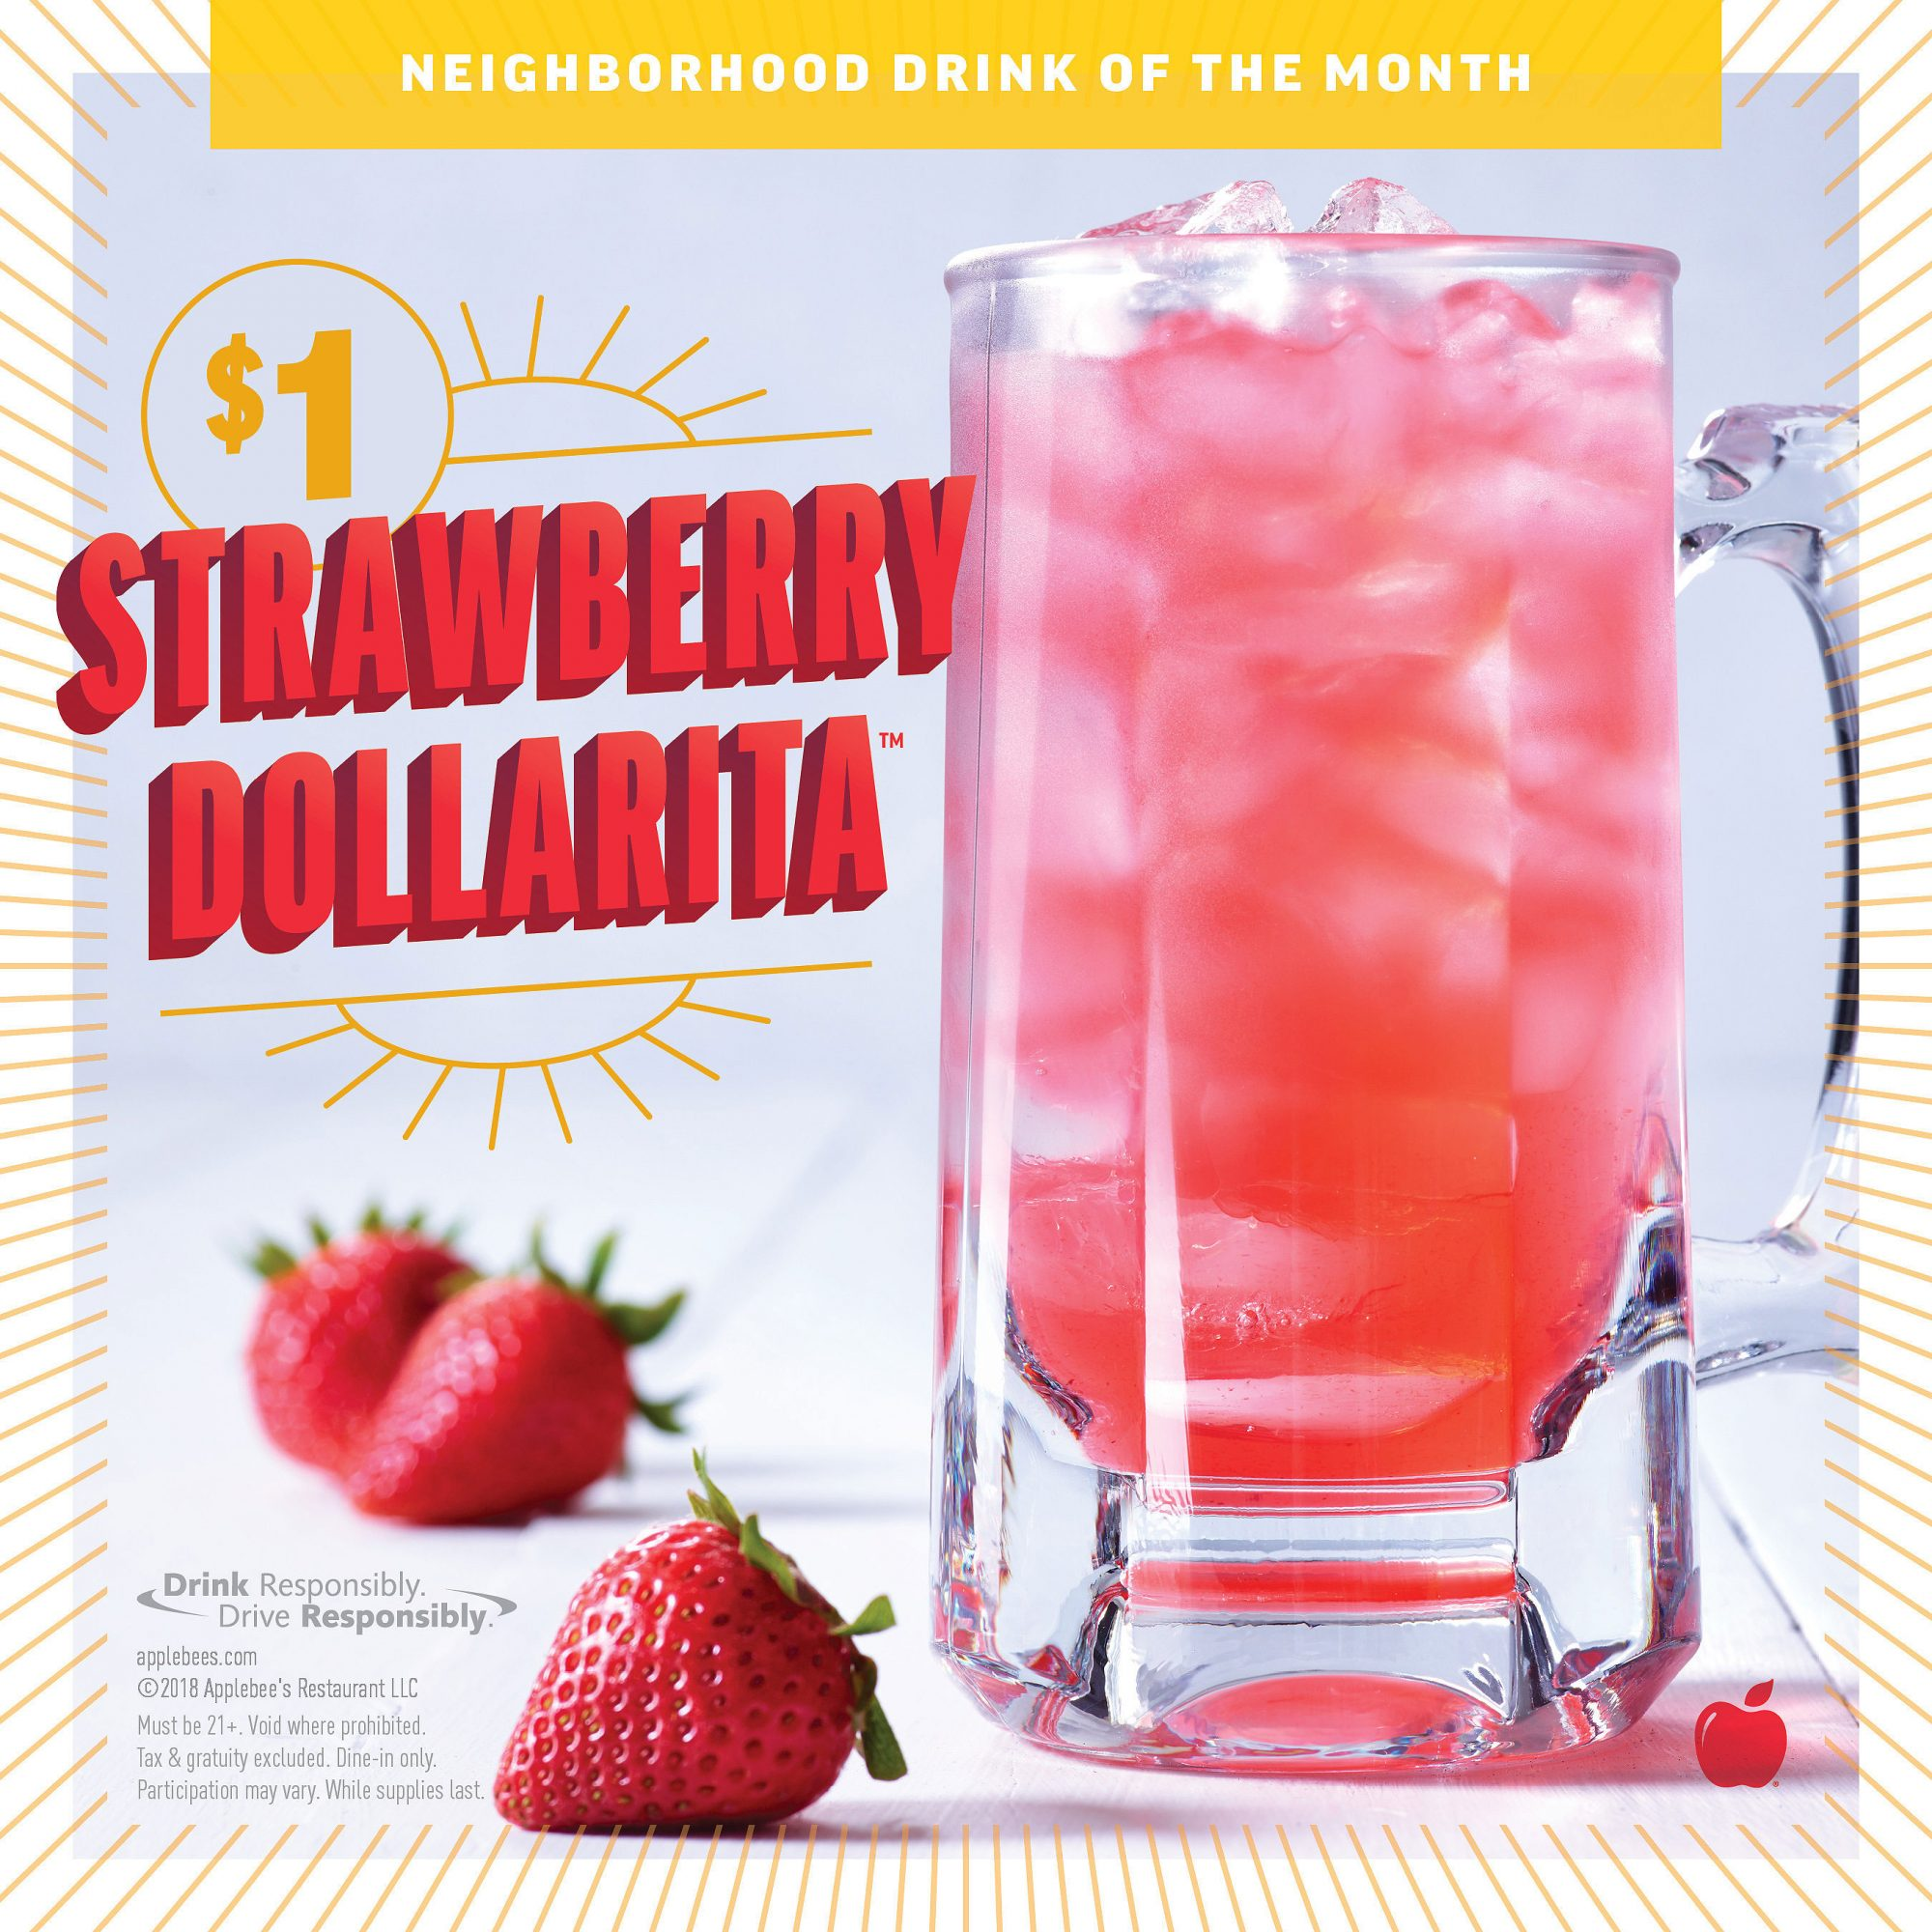 You Can Get $1 Strawberry Margaritas at Applebee's the Entire Month of August